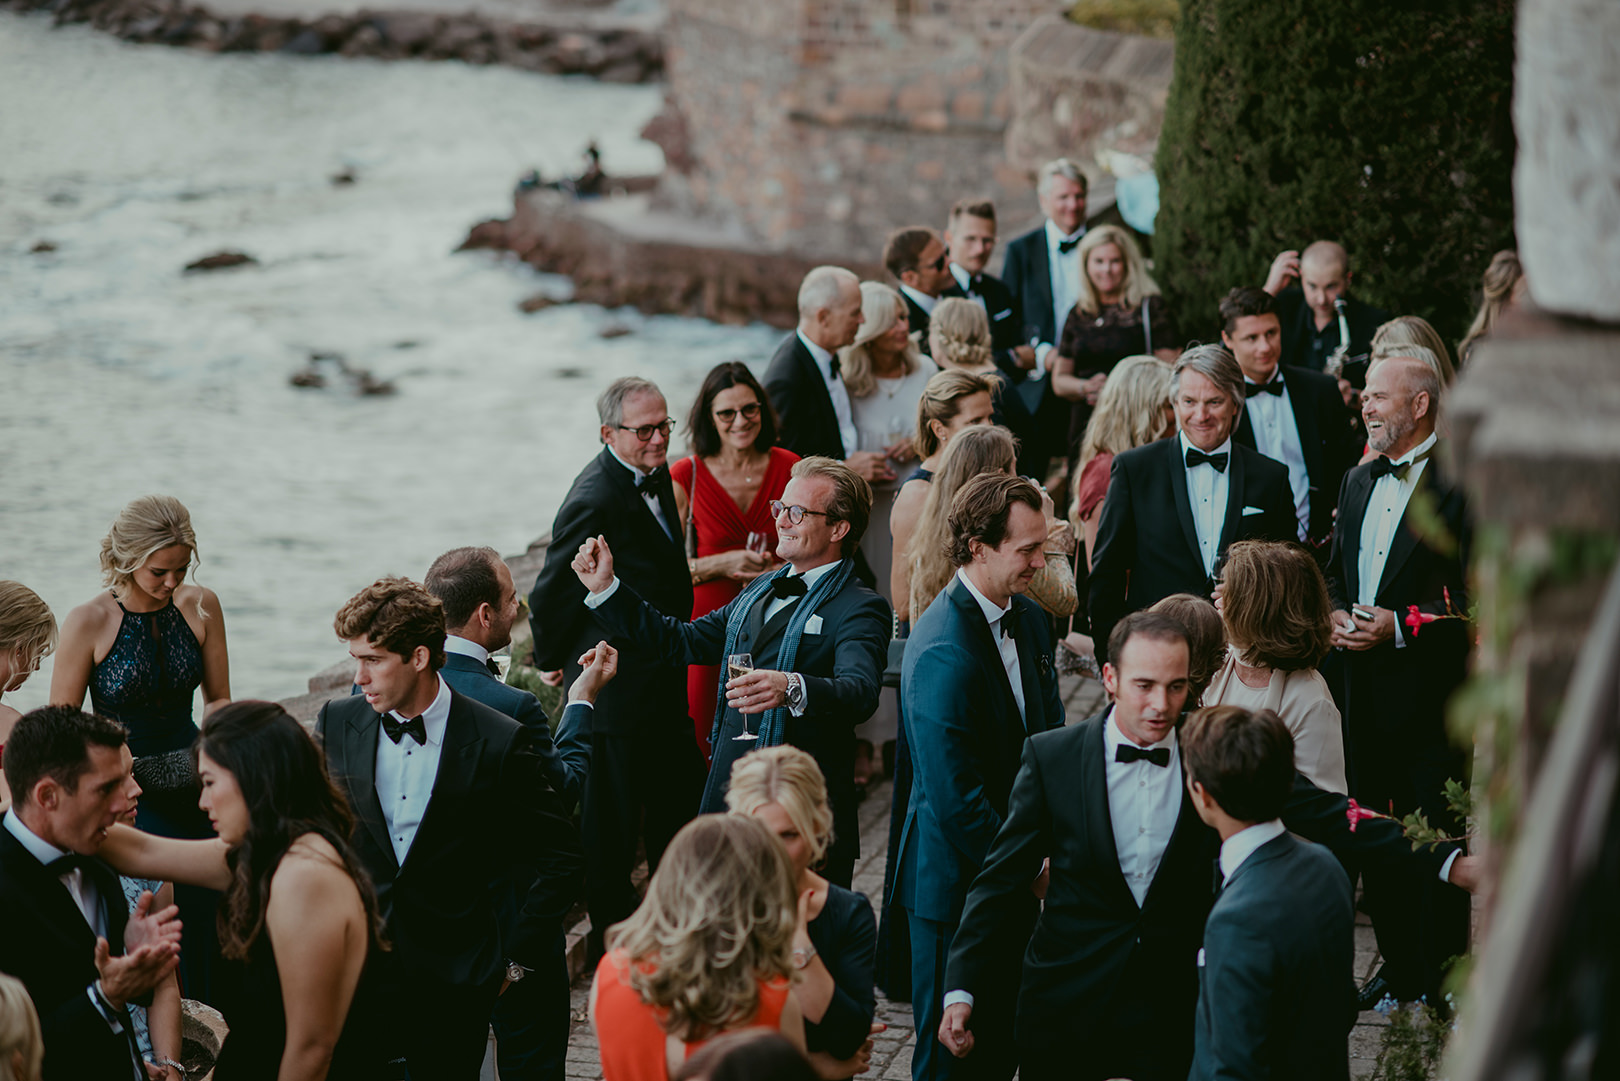 Wedding guests in Cannes South of France